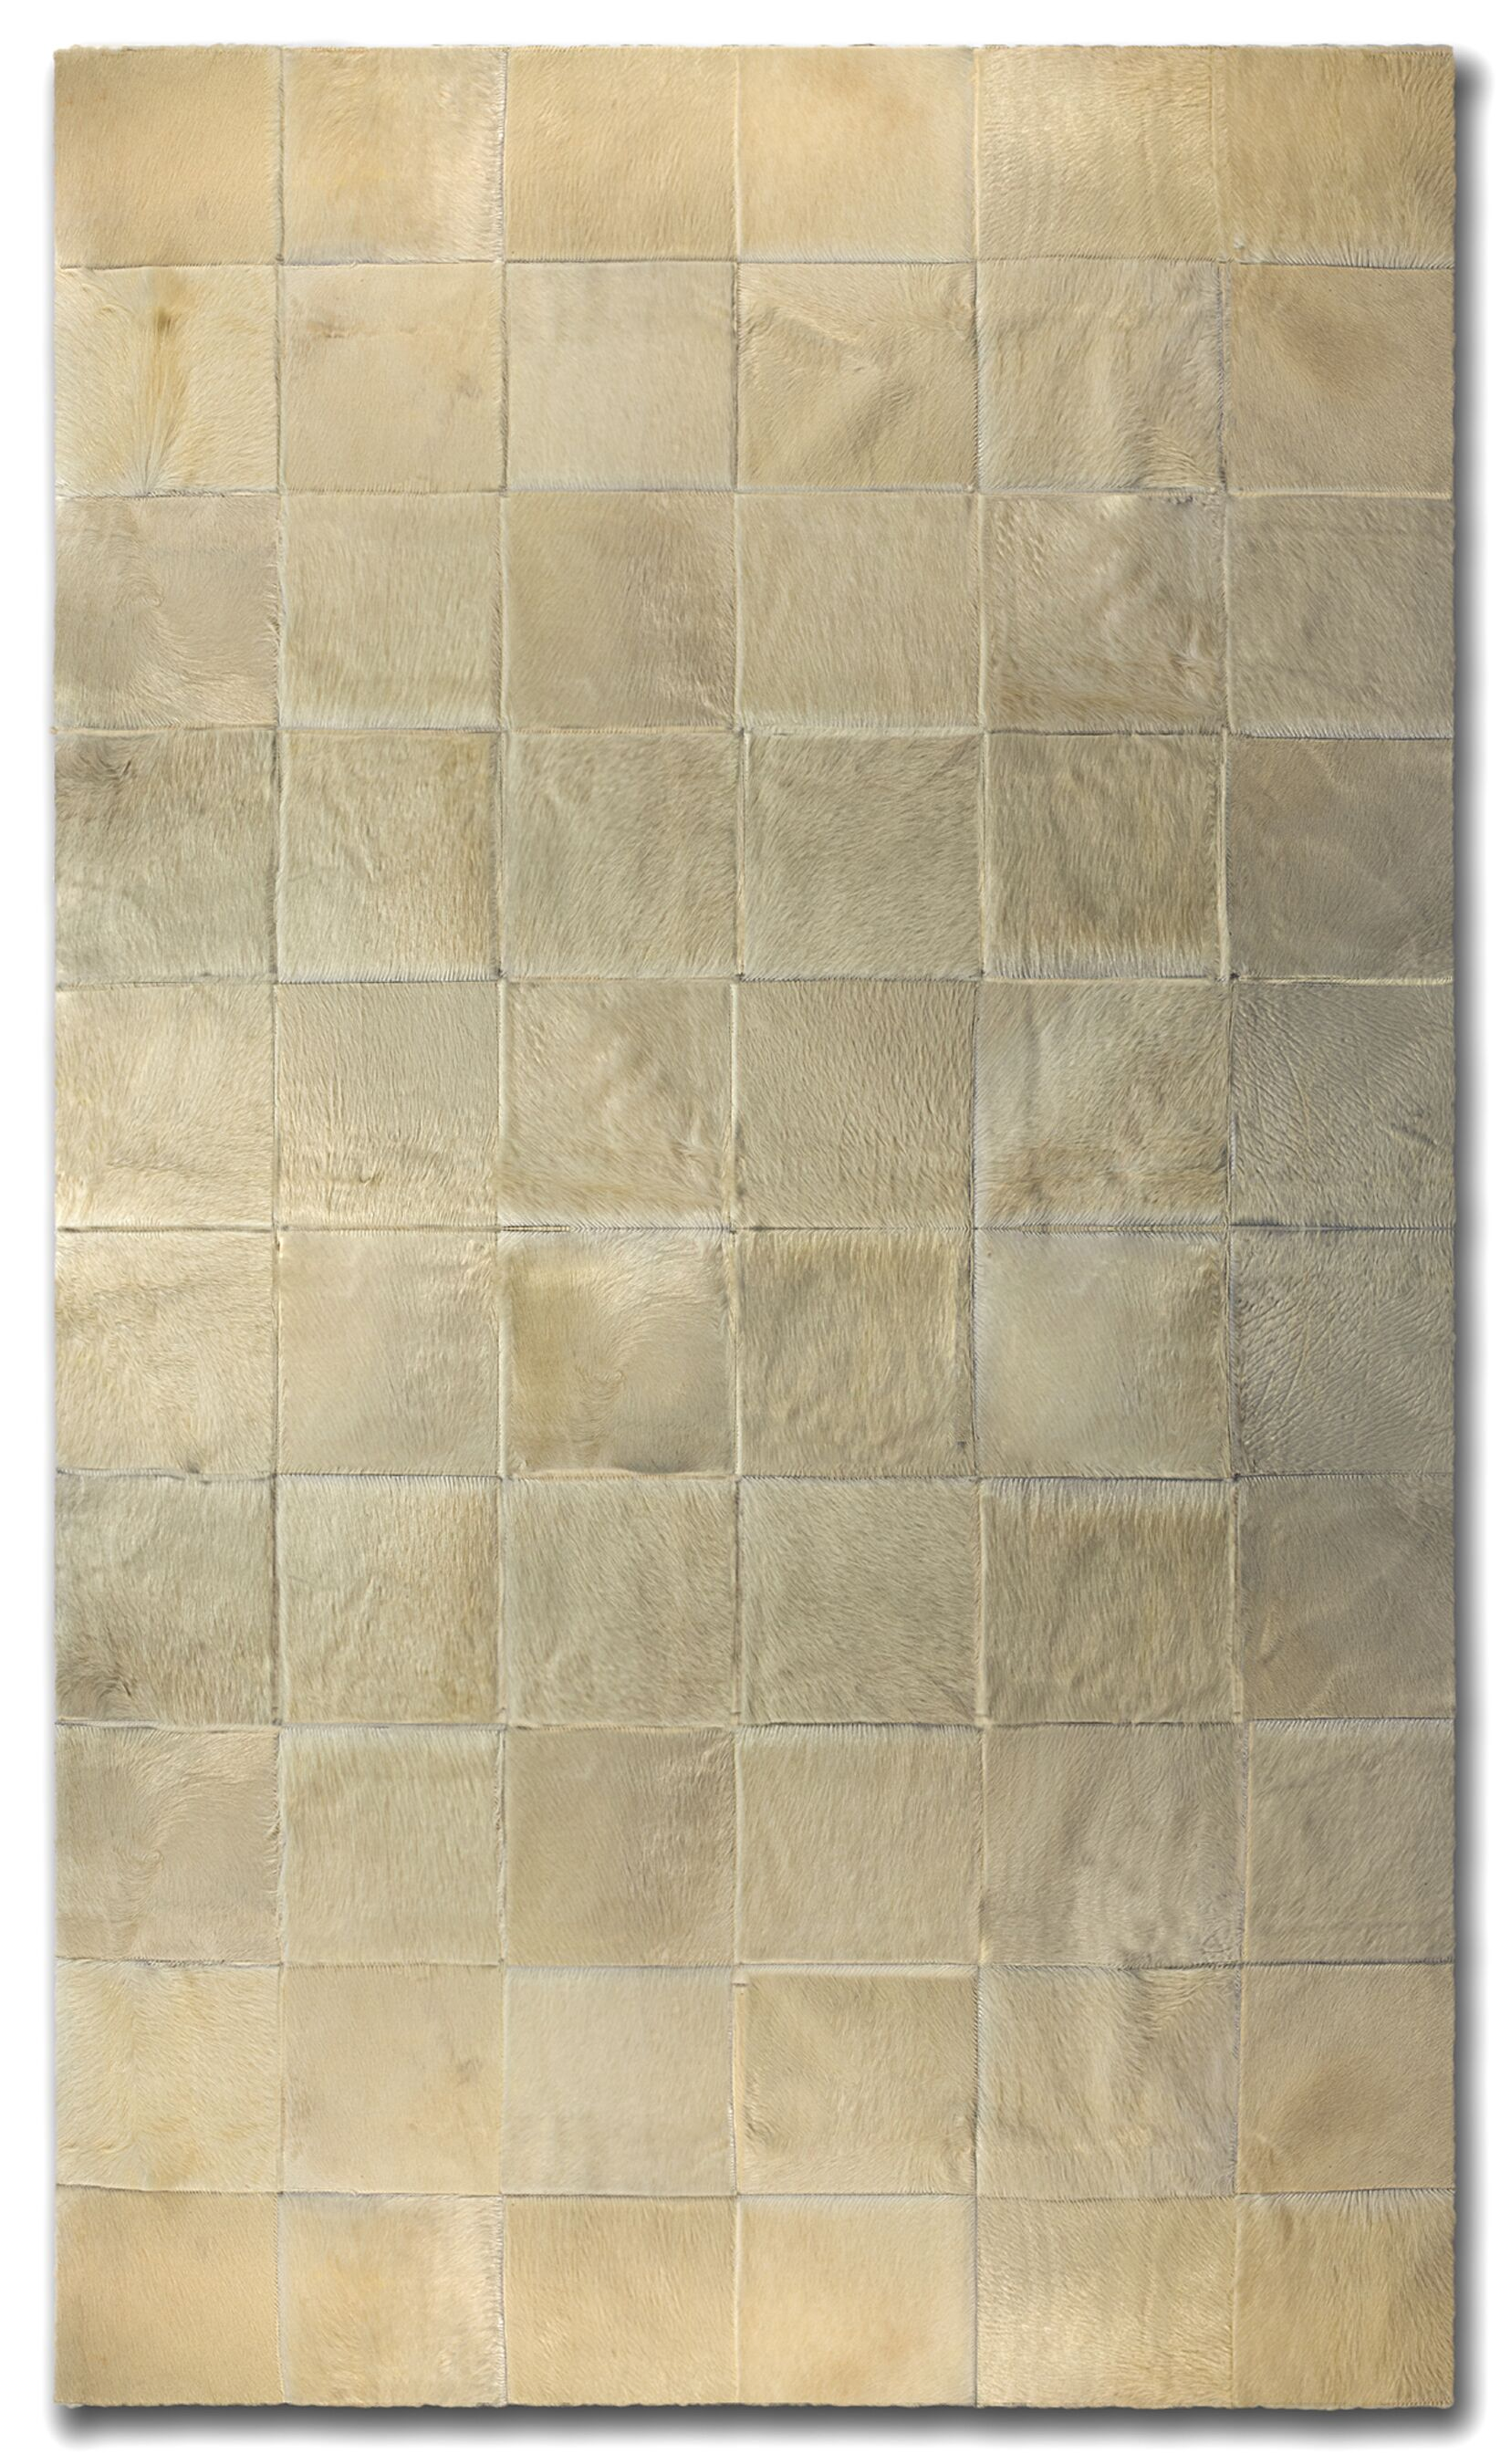 Aayush Ten Square Patch Hand-Woven Cowhide Beige Area Rug  Rug Size: 8' x 10'